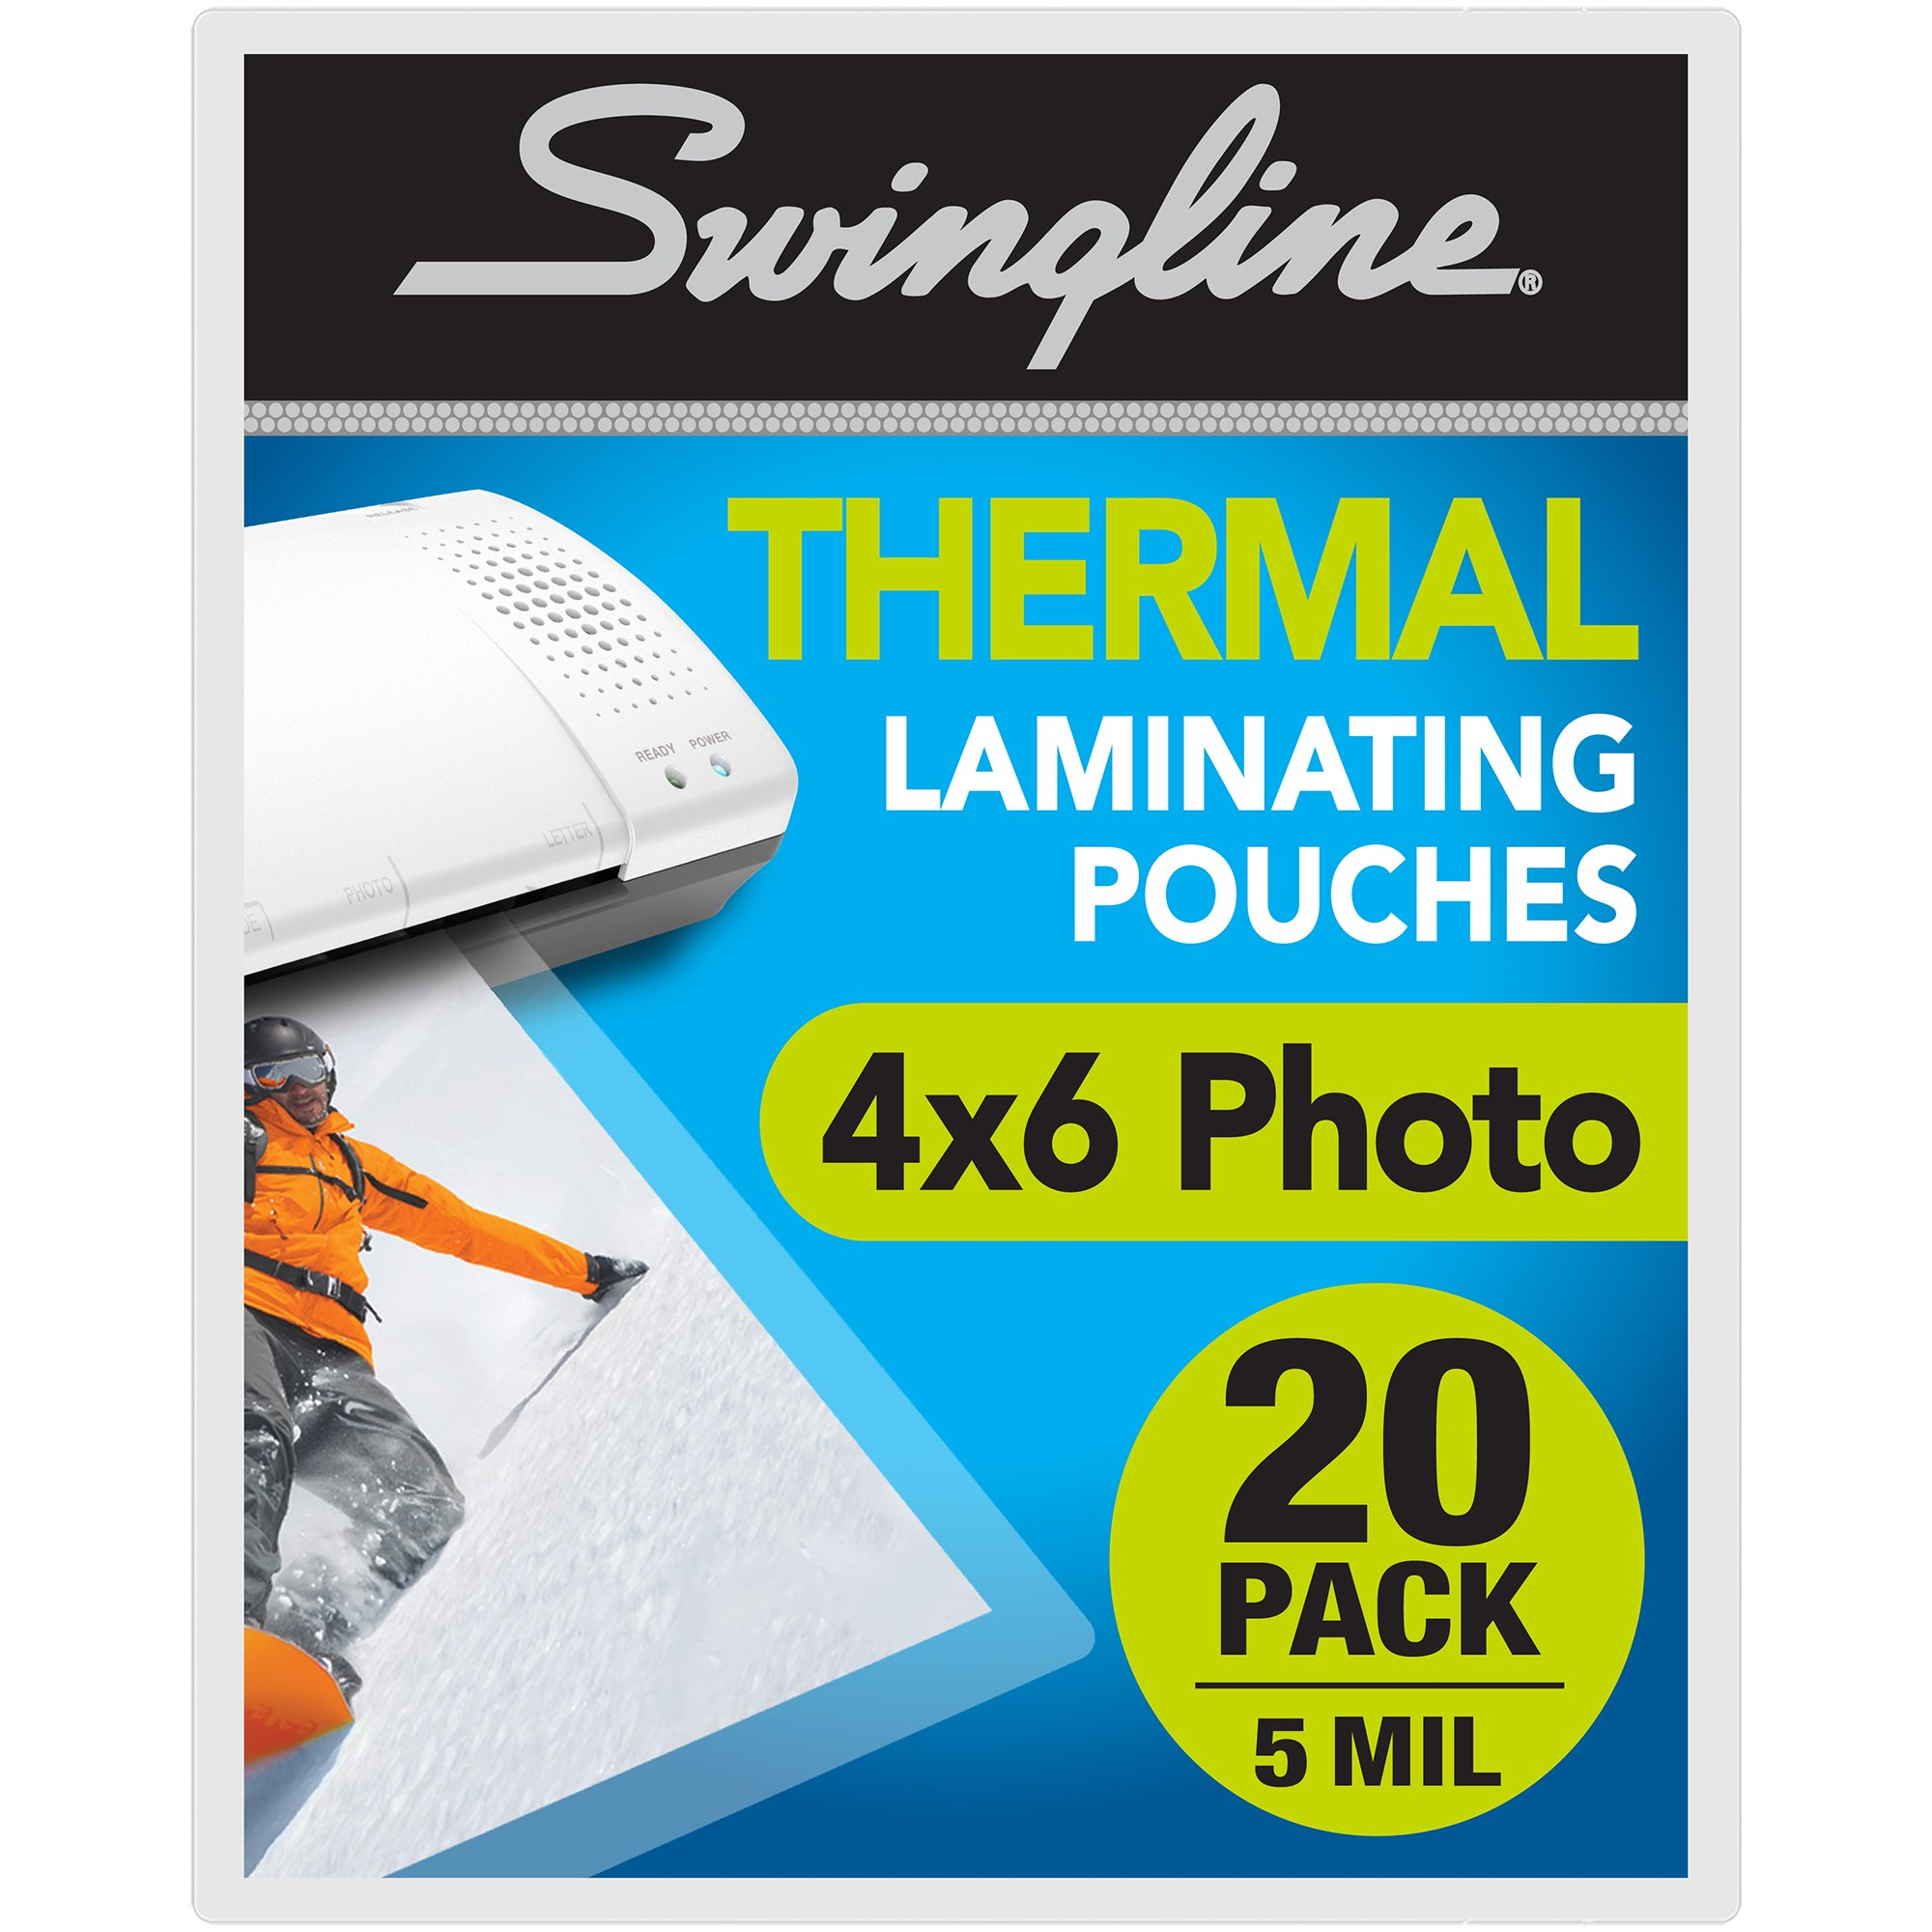 Swingline Thermal Laminating Sheets, Pouches, 4'' x 6'' Photo Size Pouch, 5 mil, 20 Pack (3202014)